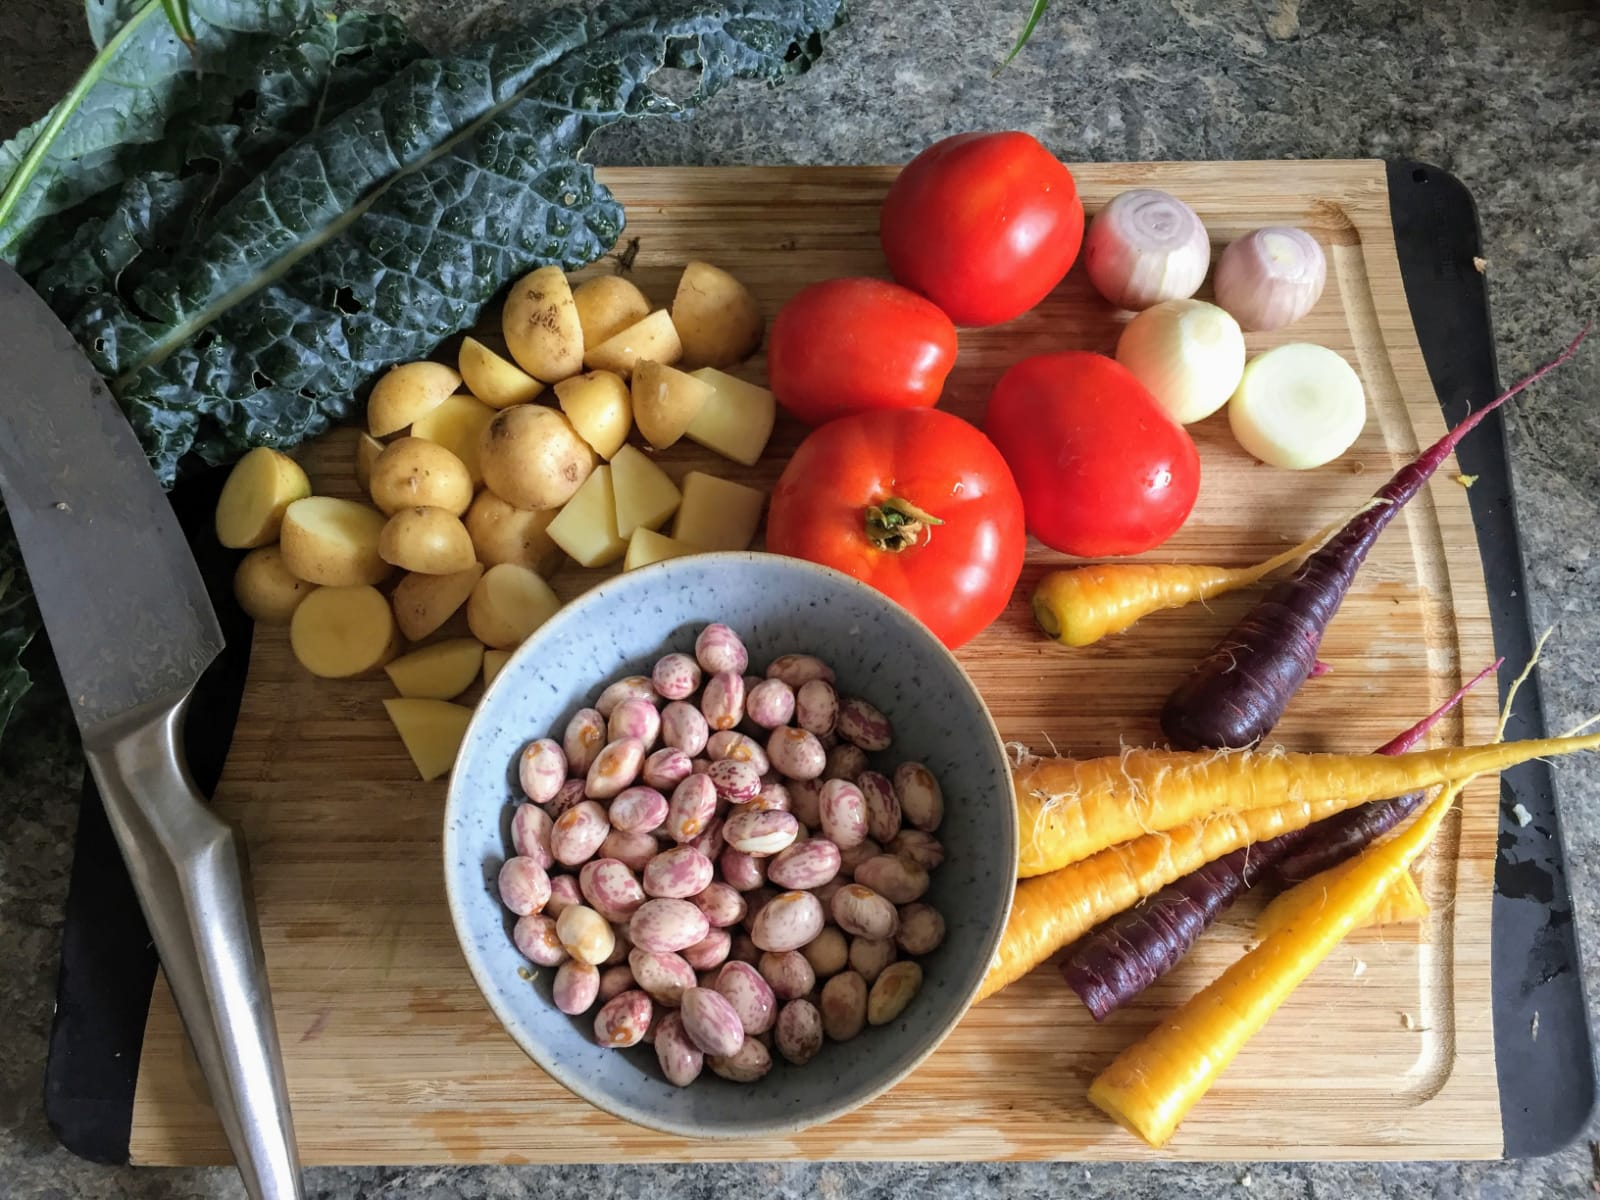 All the vegetables in the above image came from our garden. To see what we did with these ingredients,    see here   .